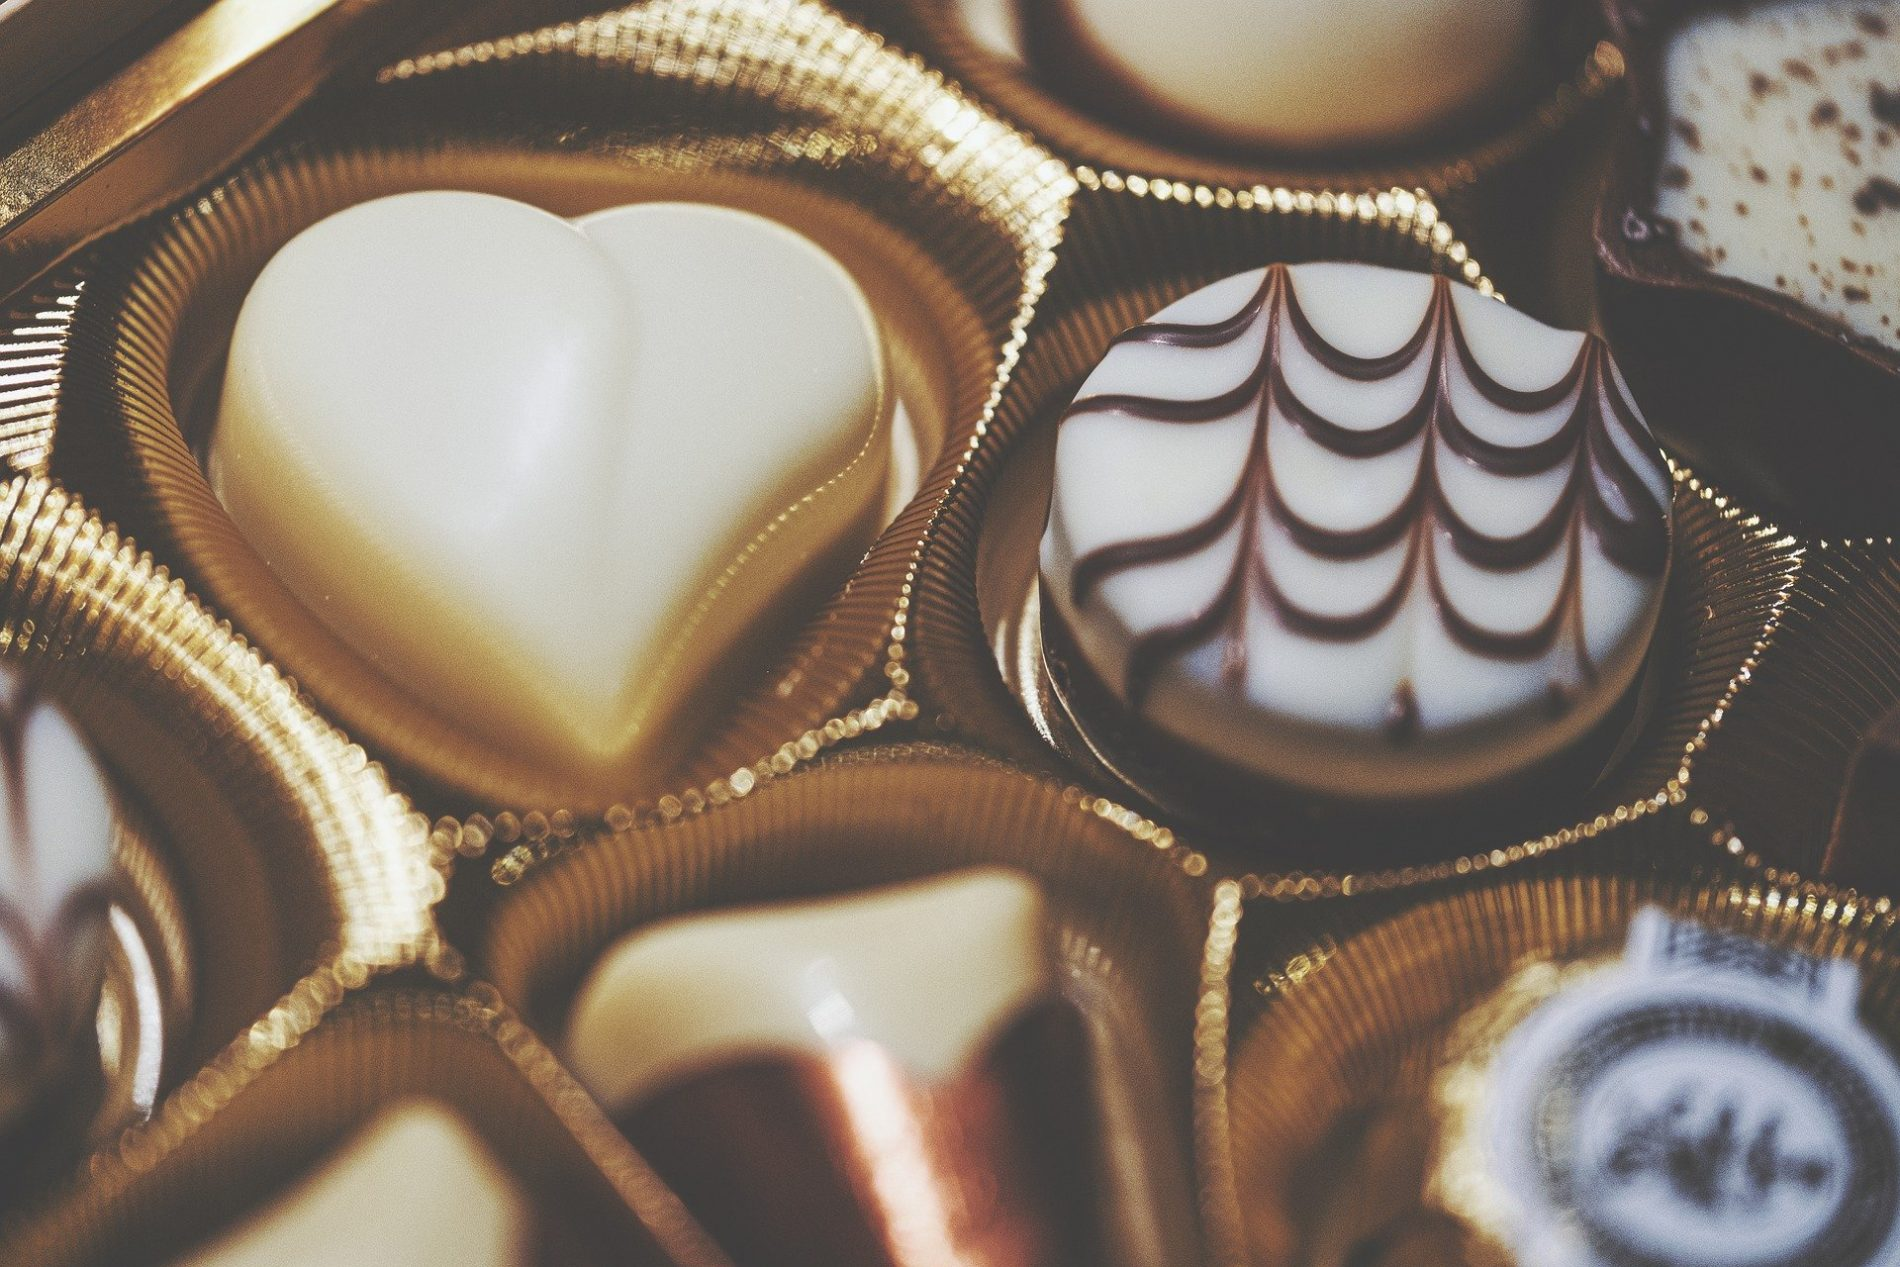 Chocolate, Candy and Confectionery Logistics: What You Need To Know About Temperature-Controlled Warehousing and Transportation